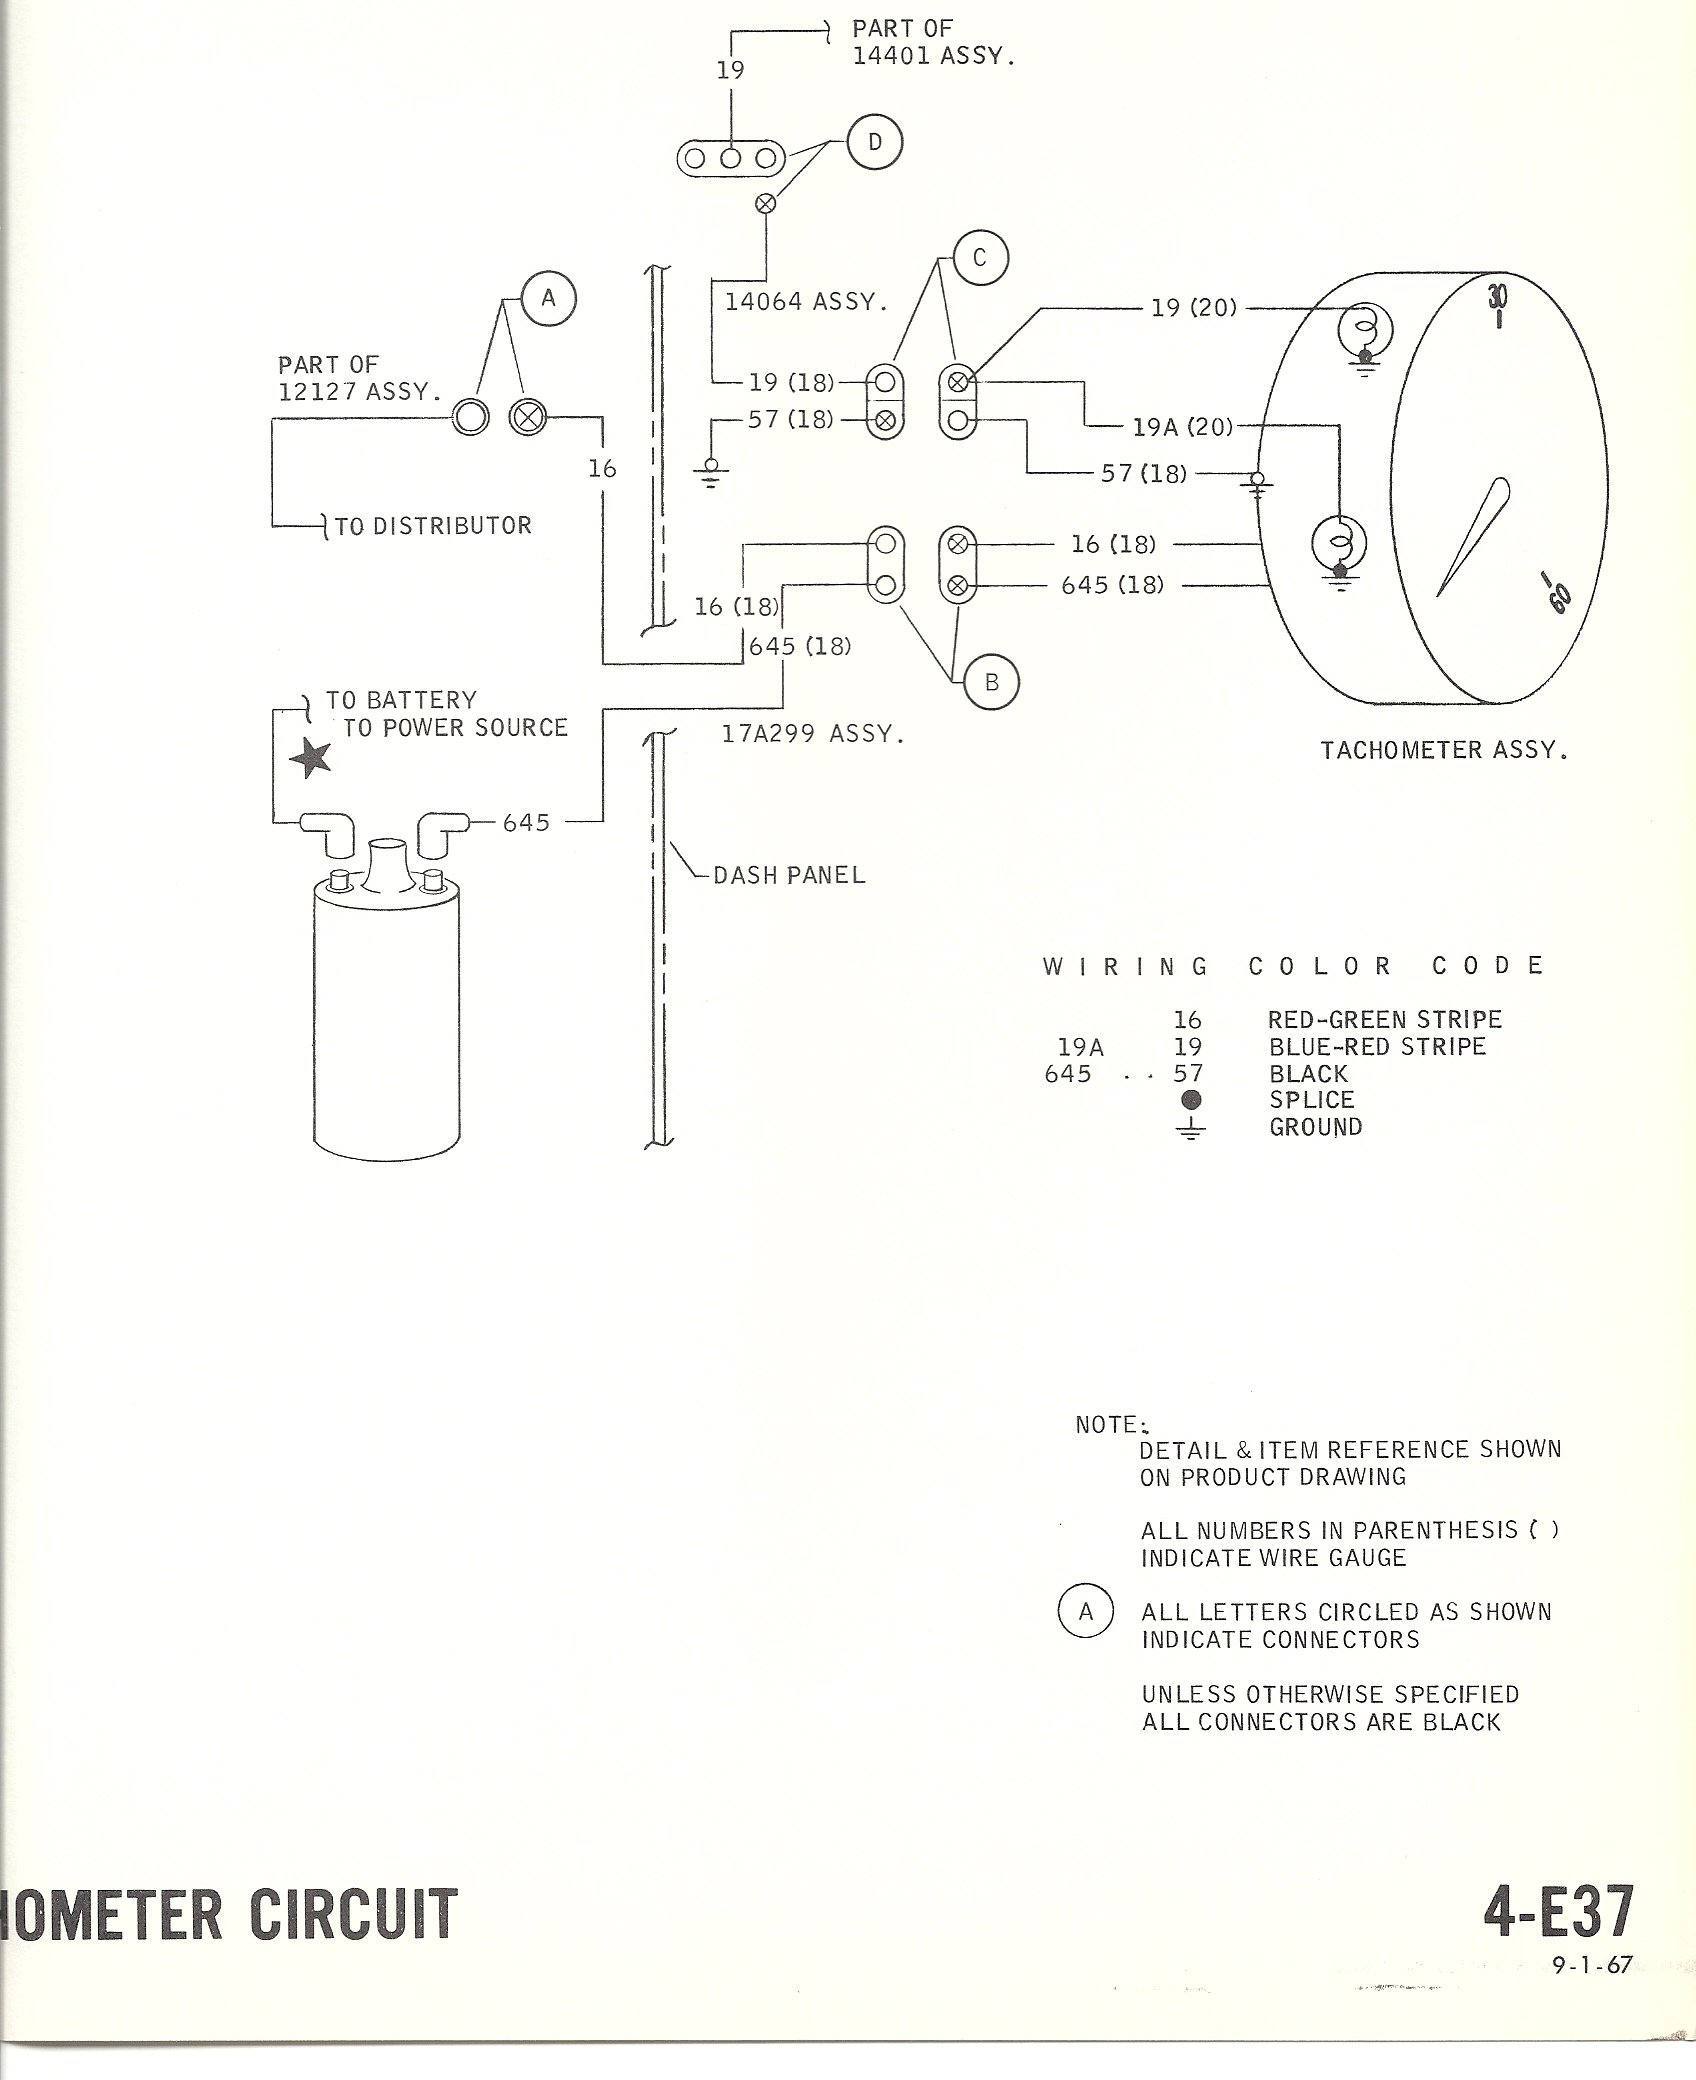 89255d1264897998 1968 mustang wiring diagrams tach please help tach wiring diagram datcon tachometer wiring diagram datcon tachometer installation  at readyjetset.co